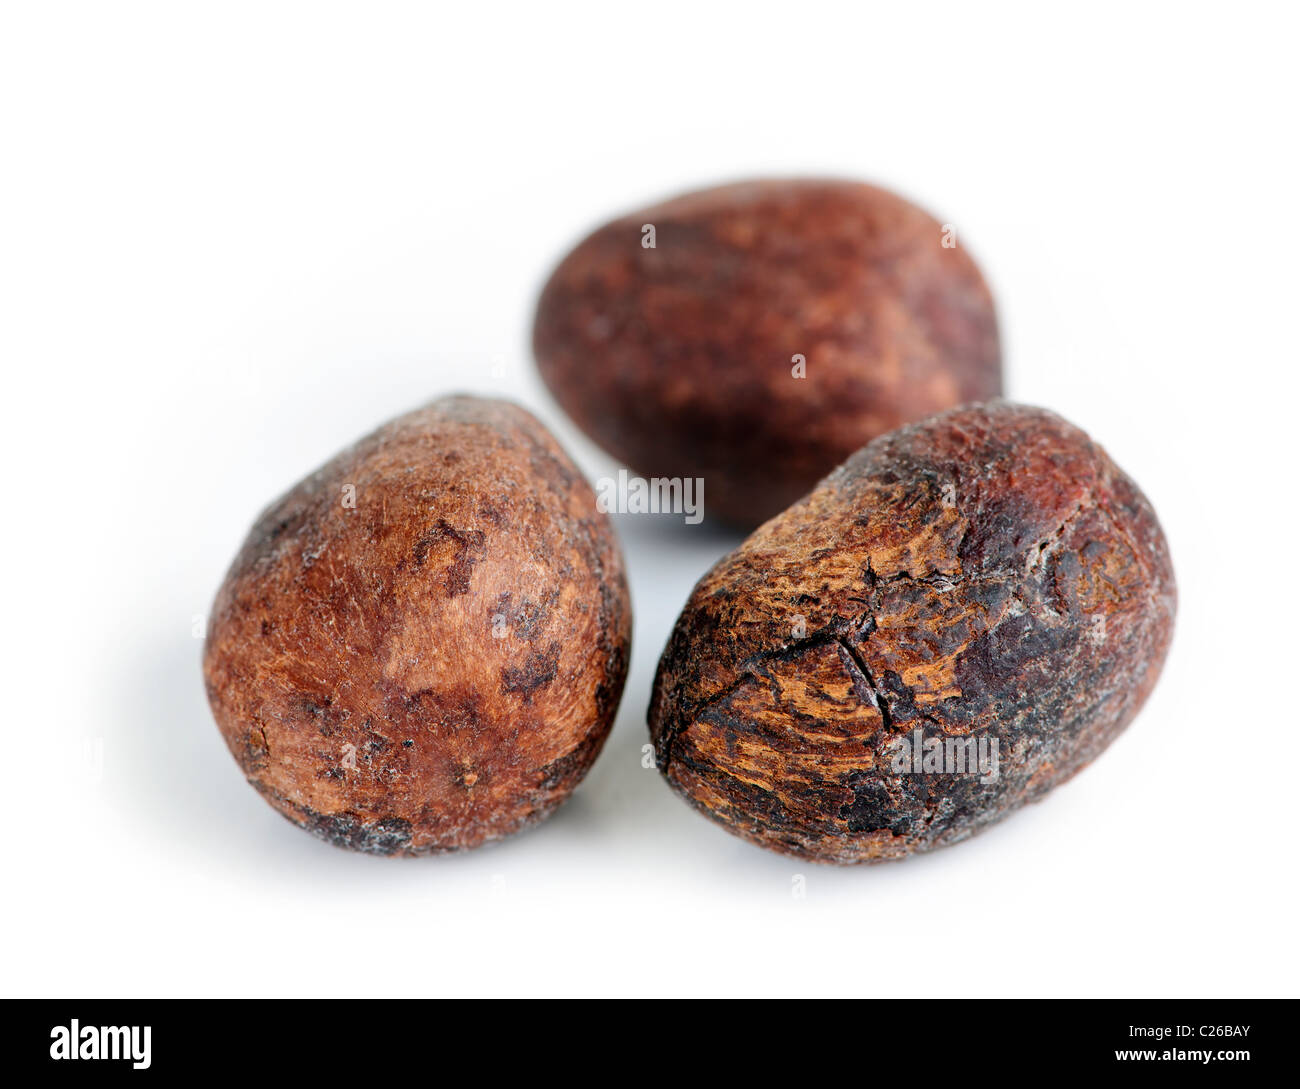 Raw unprocessed shea nuts isolated on white background - Stock Image